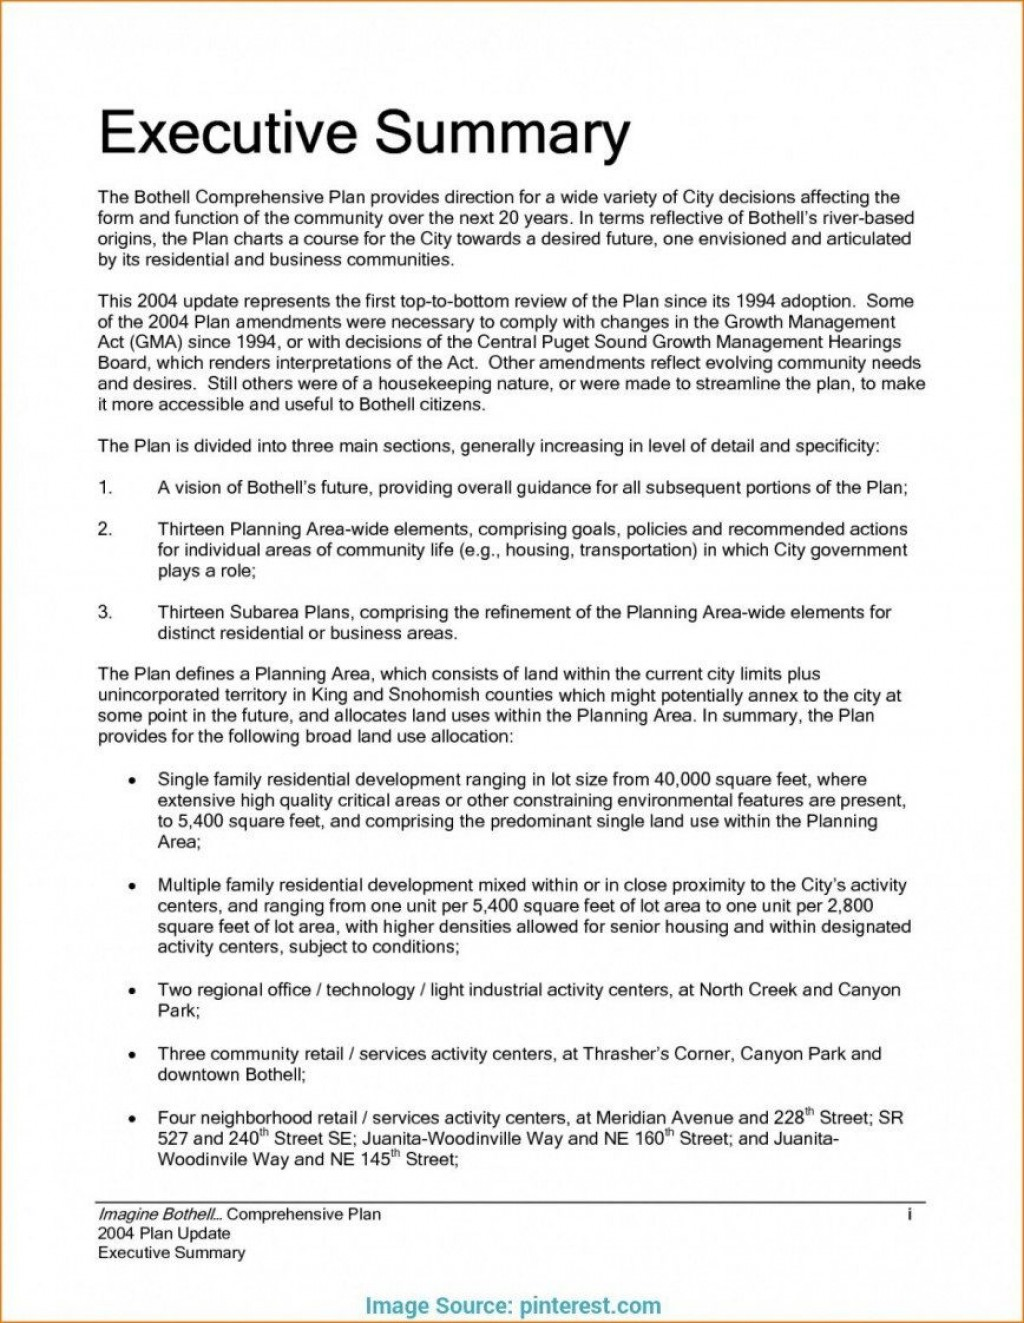 008 Exceptional Executive Summary Template Word Free Highest Quality Large